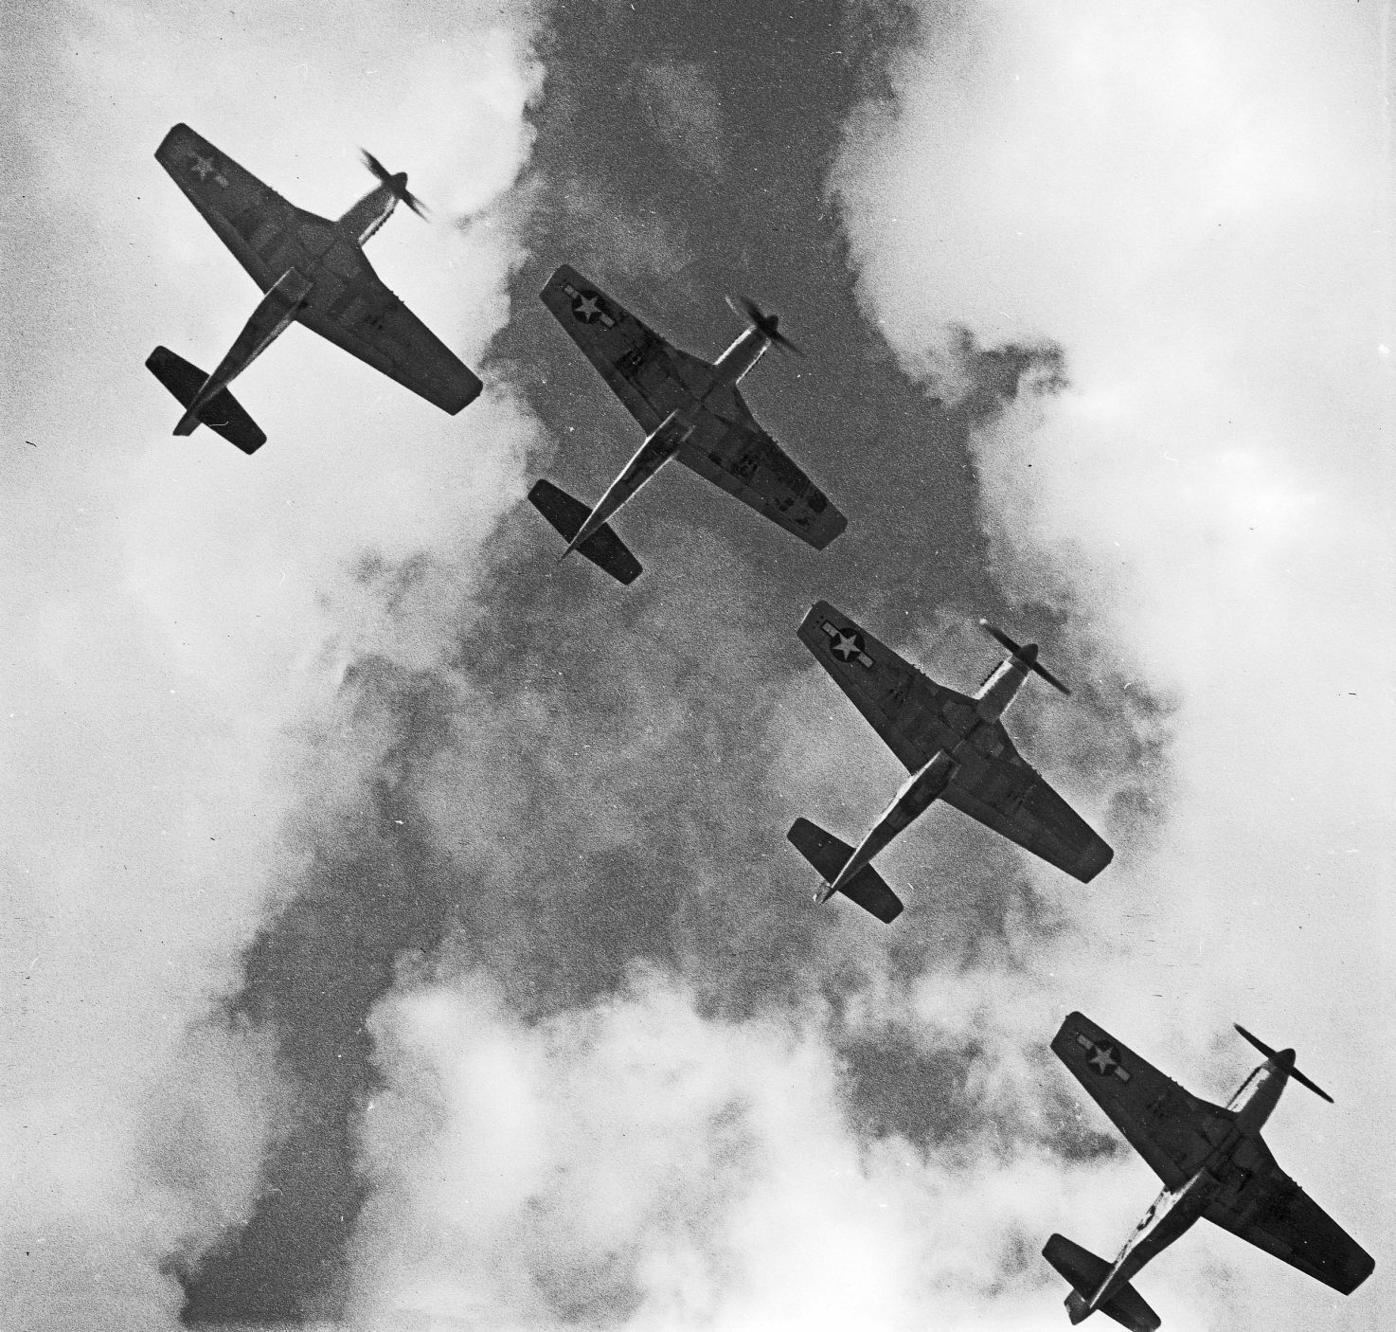 A formation of P-51 Mustangs flying over Italy in 1945